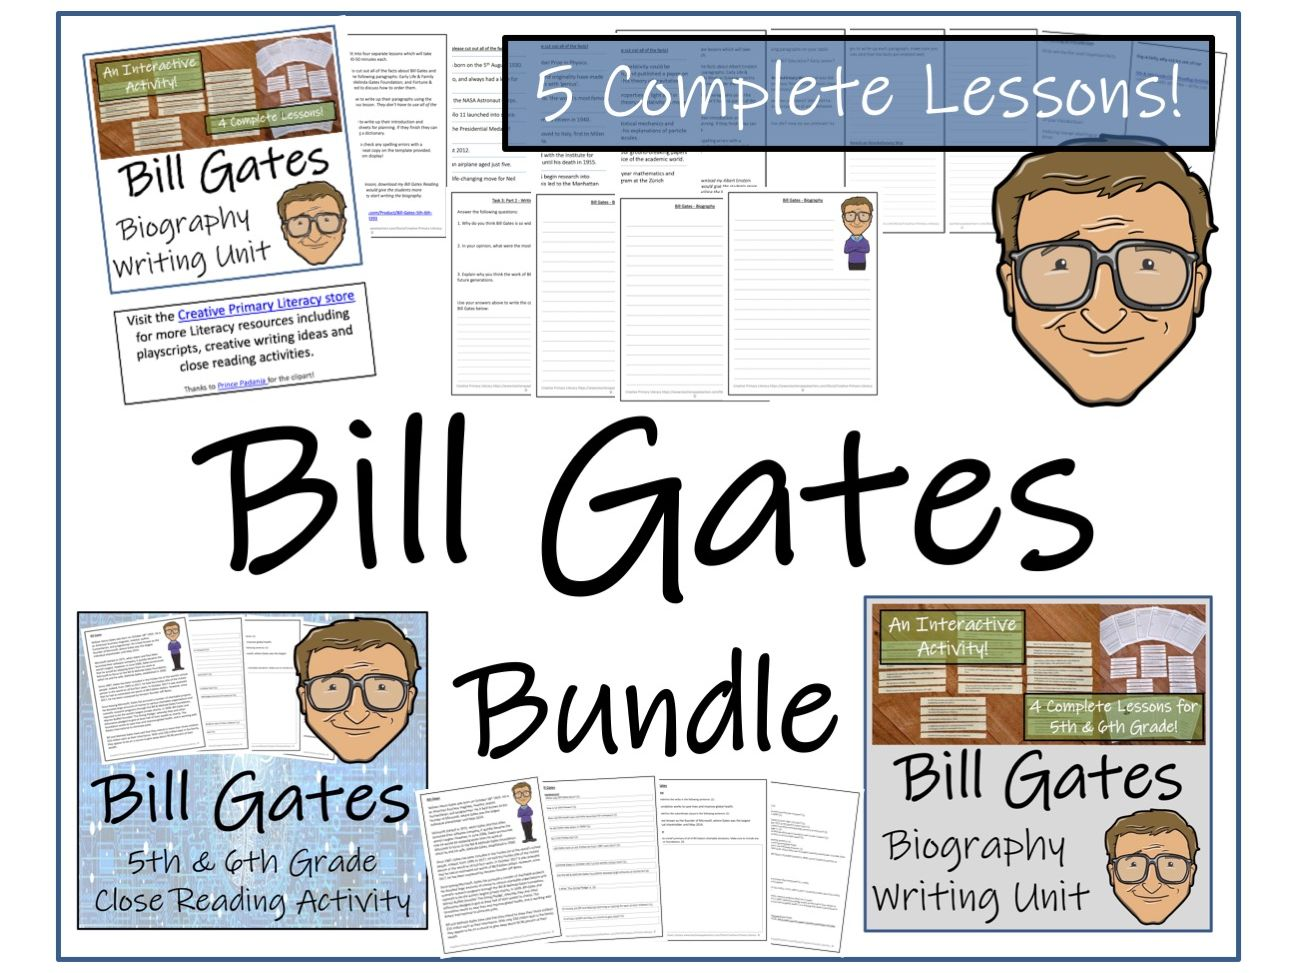 UKS2 Literacy - Bundle of Bill Gates Activities